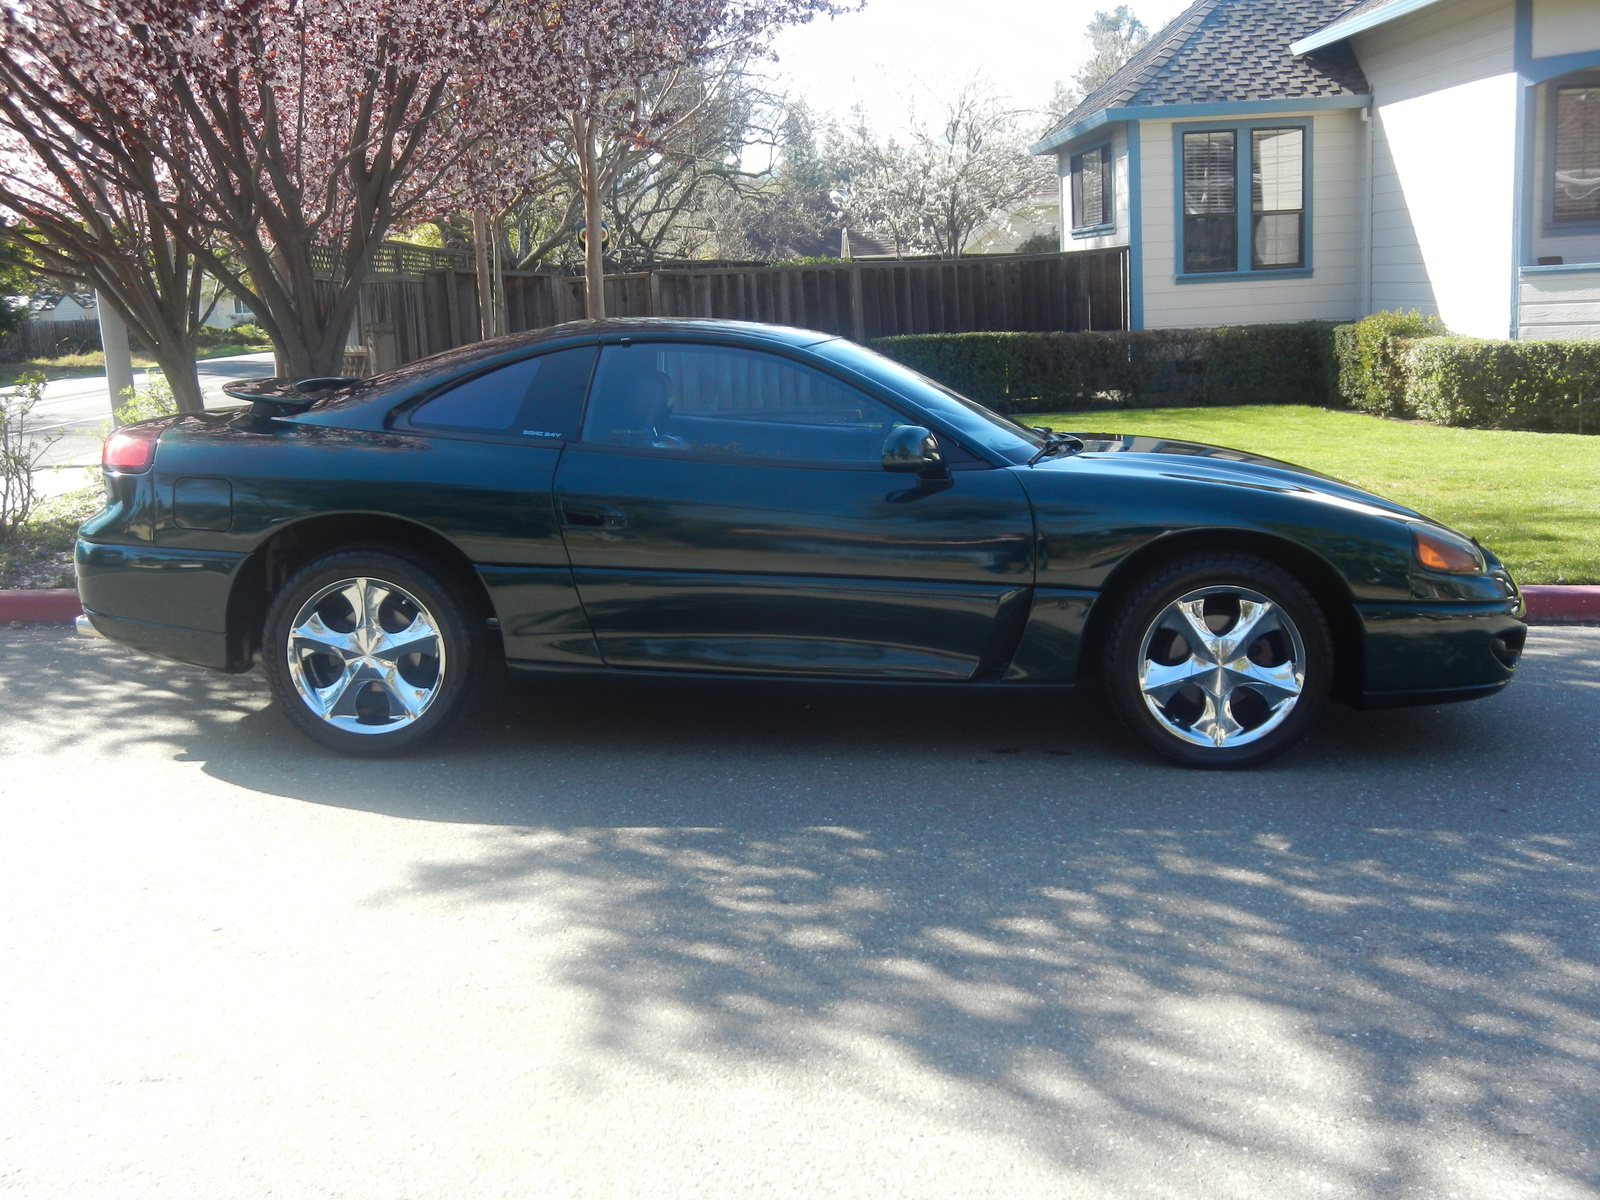 Dodge Stealth Dr R T Hatchback Pic on Dodge Dakota R T Listings